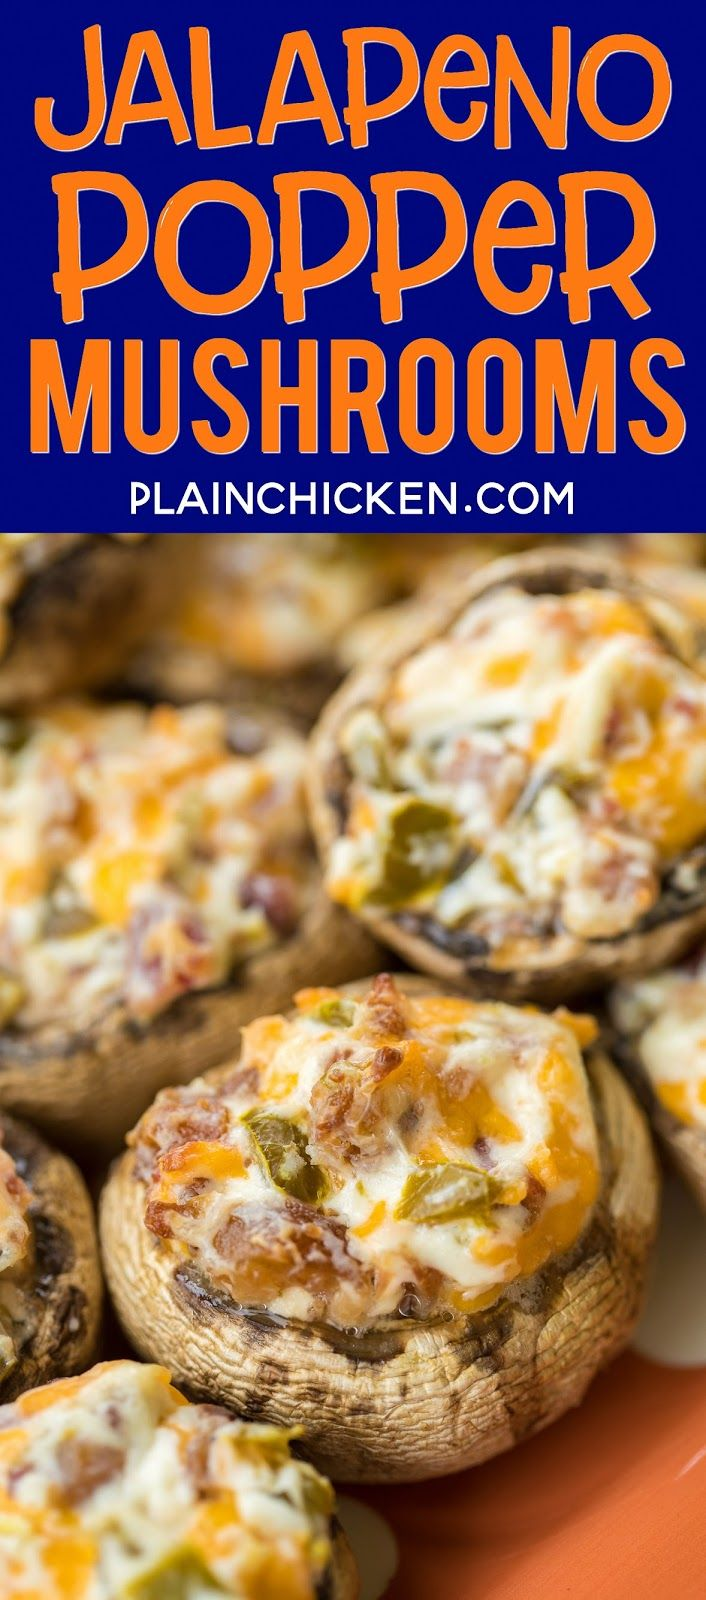 Jalapeno Popper Mushrooms - always the first thing to go at parties! Mushrooms stuffed with cream cheese, garlic, cheddar cheese, bacon and jalapeños. Seriously delicious! Can prep mushrooms ahead of time and refrigerate until ready to bake. Great for parties or a low-carb snack.